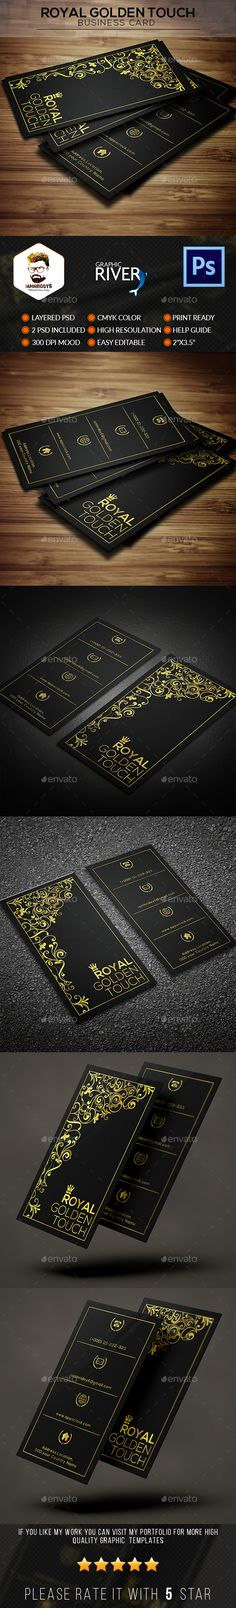 Royal Golden Touch Business Card - Business Cards Print Templates Download here : https://graphicriver.net/item/royal-golden-touch-business-card/17663813?s_rank=37&ref=Al-fatih